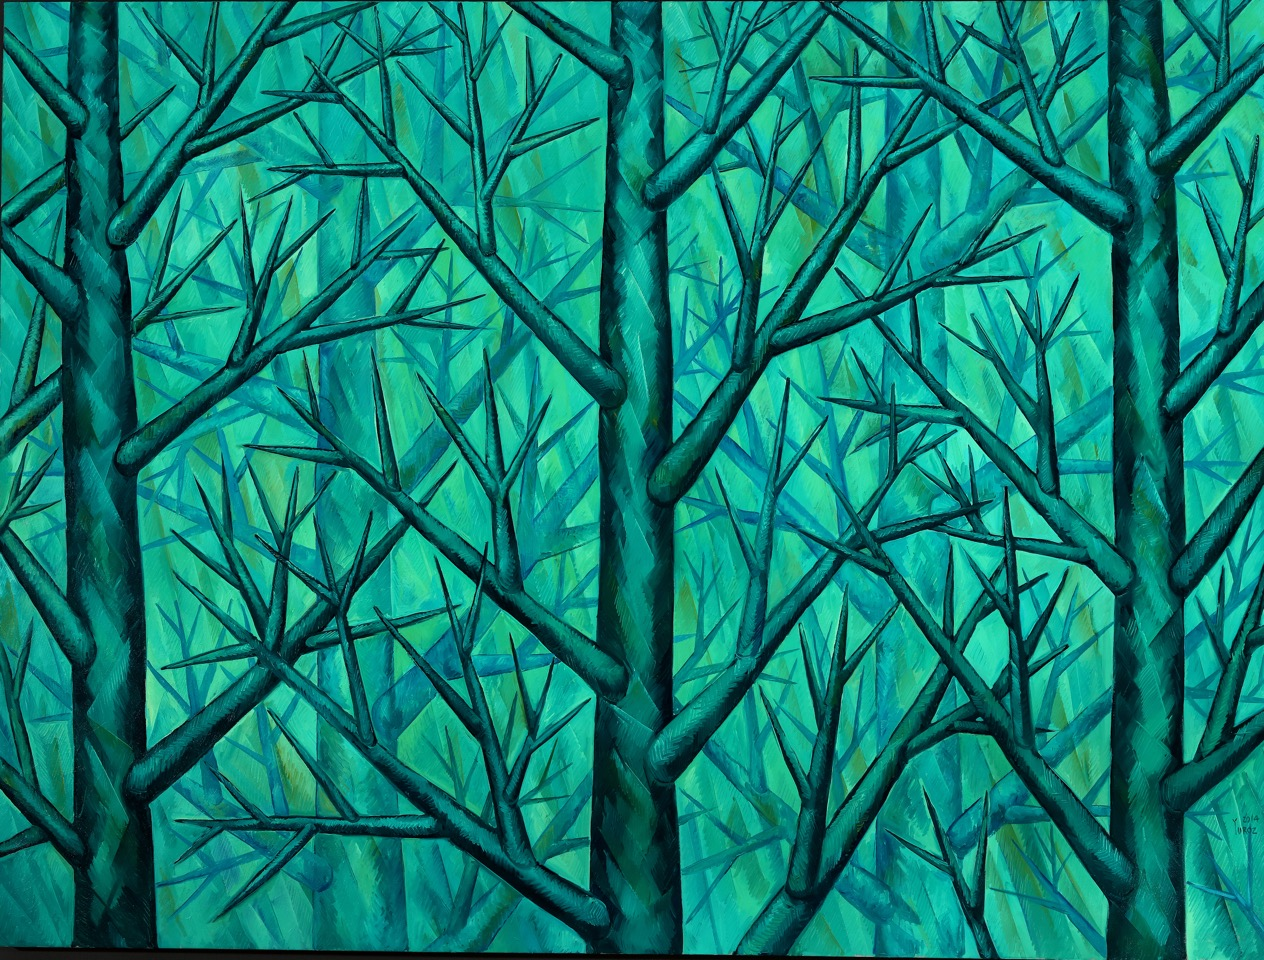 """Harmony in Green"", Symbiosis Collection, Original Oil on Canvas 80"" x 100"""